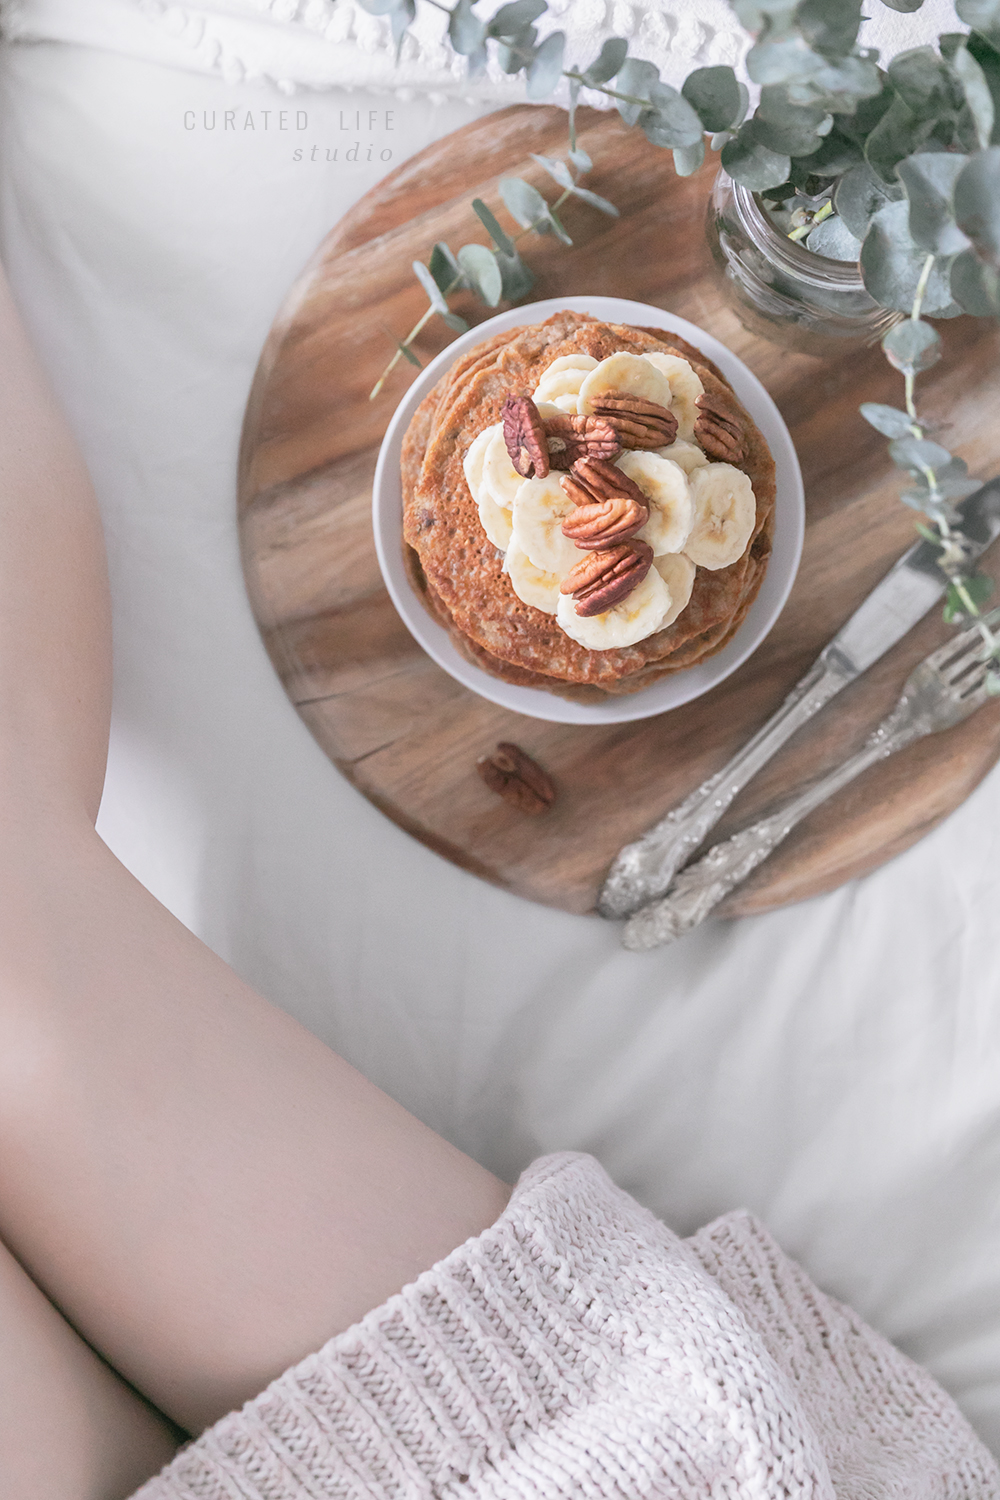 Birds-eye view of a woman sitting on the bed beside the wooden tray filled with banana pancakes, overflowing in fresh banana and toasted pecans.